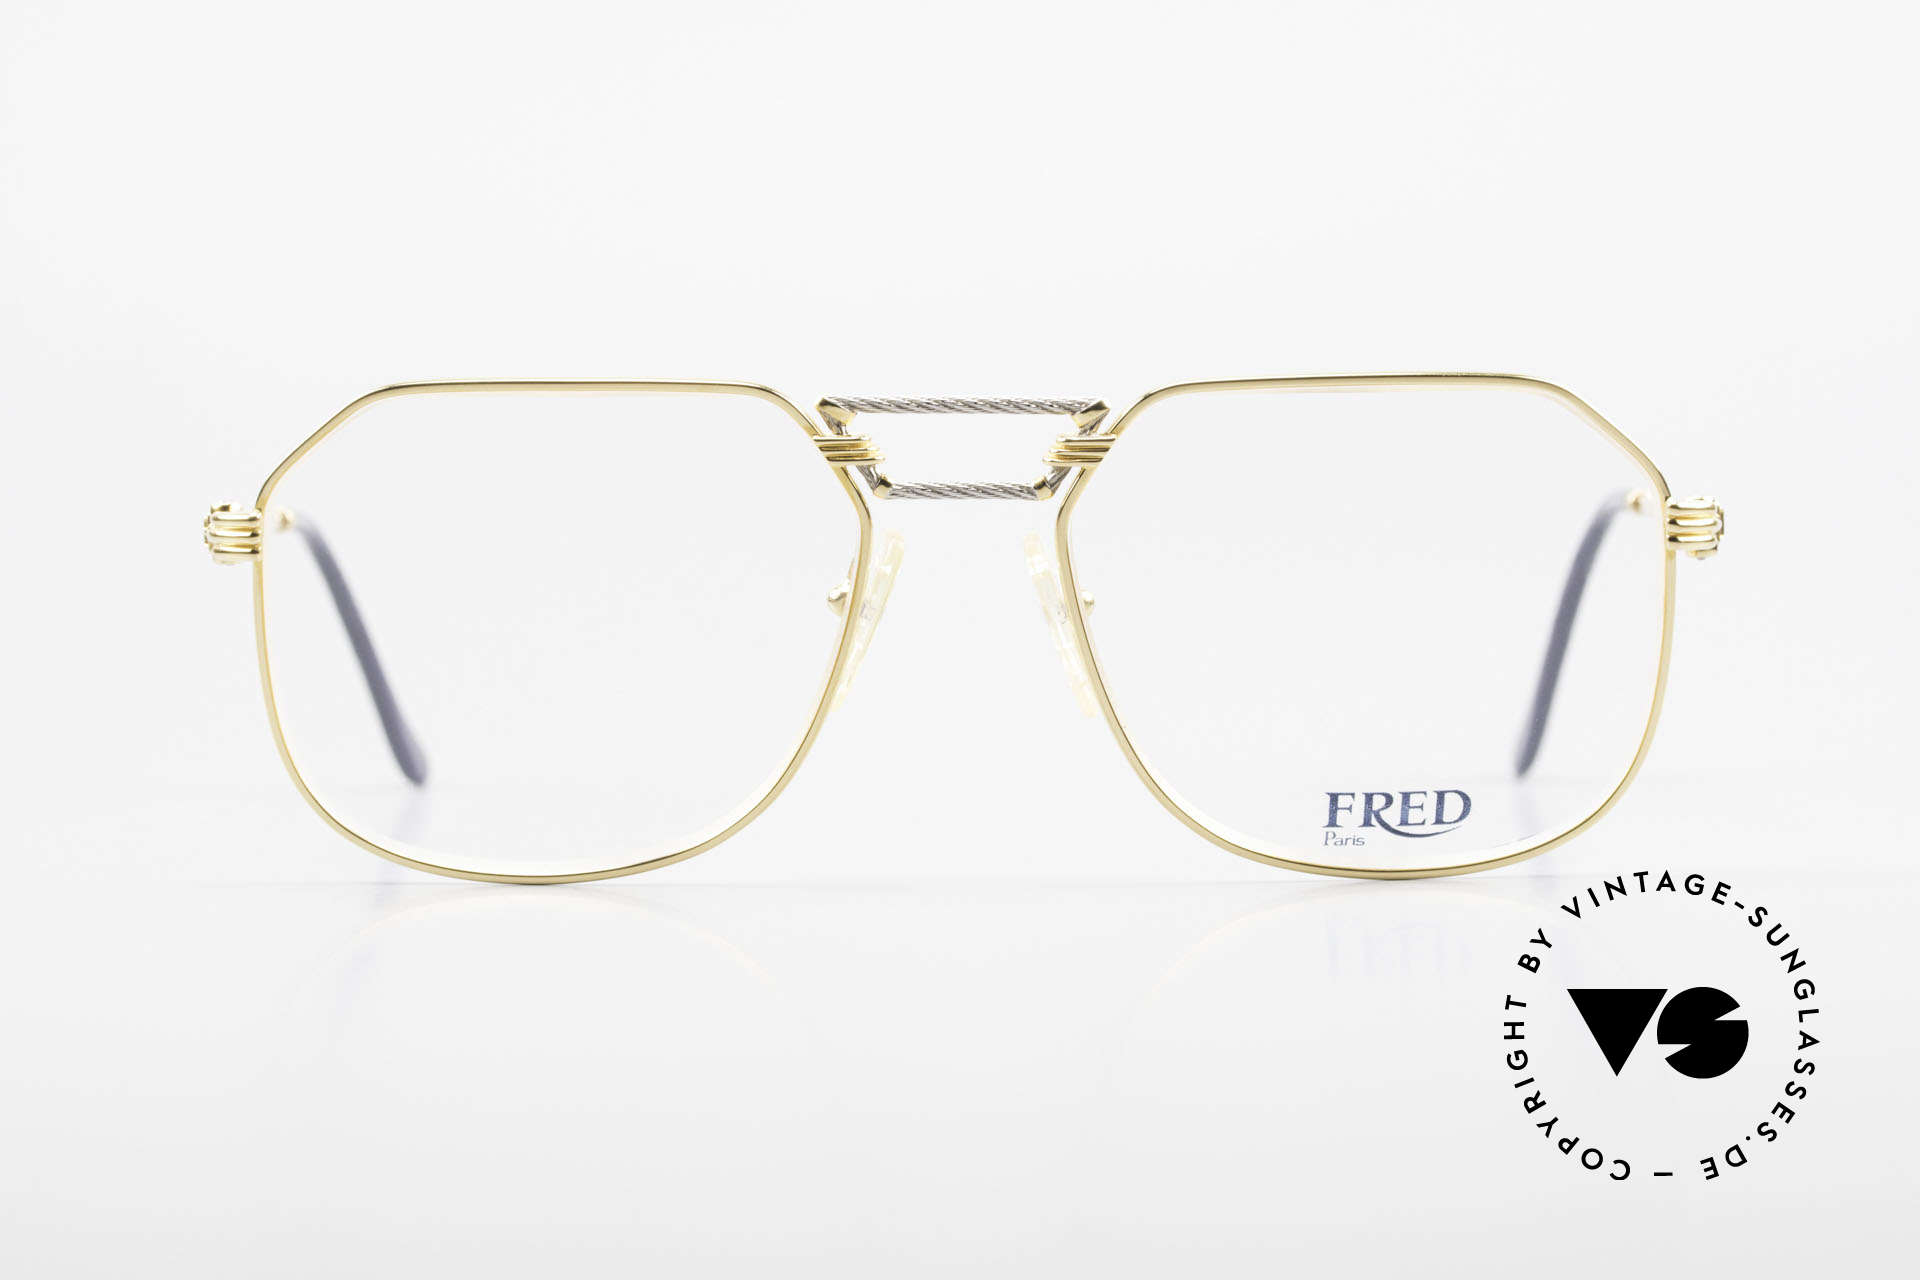 Fred Cap Horn - L Rare Luxury Eyeglasses 80's, marine design (distinctive FRED) in high-end quality, Made for Men